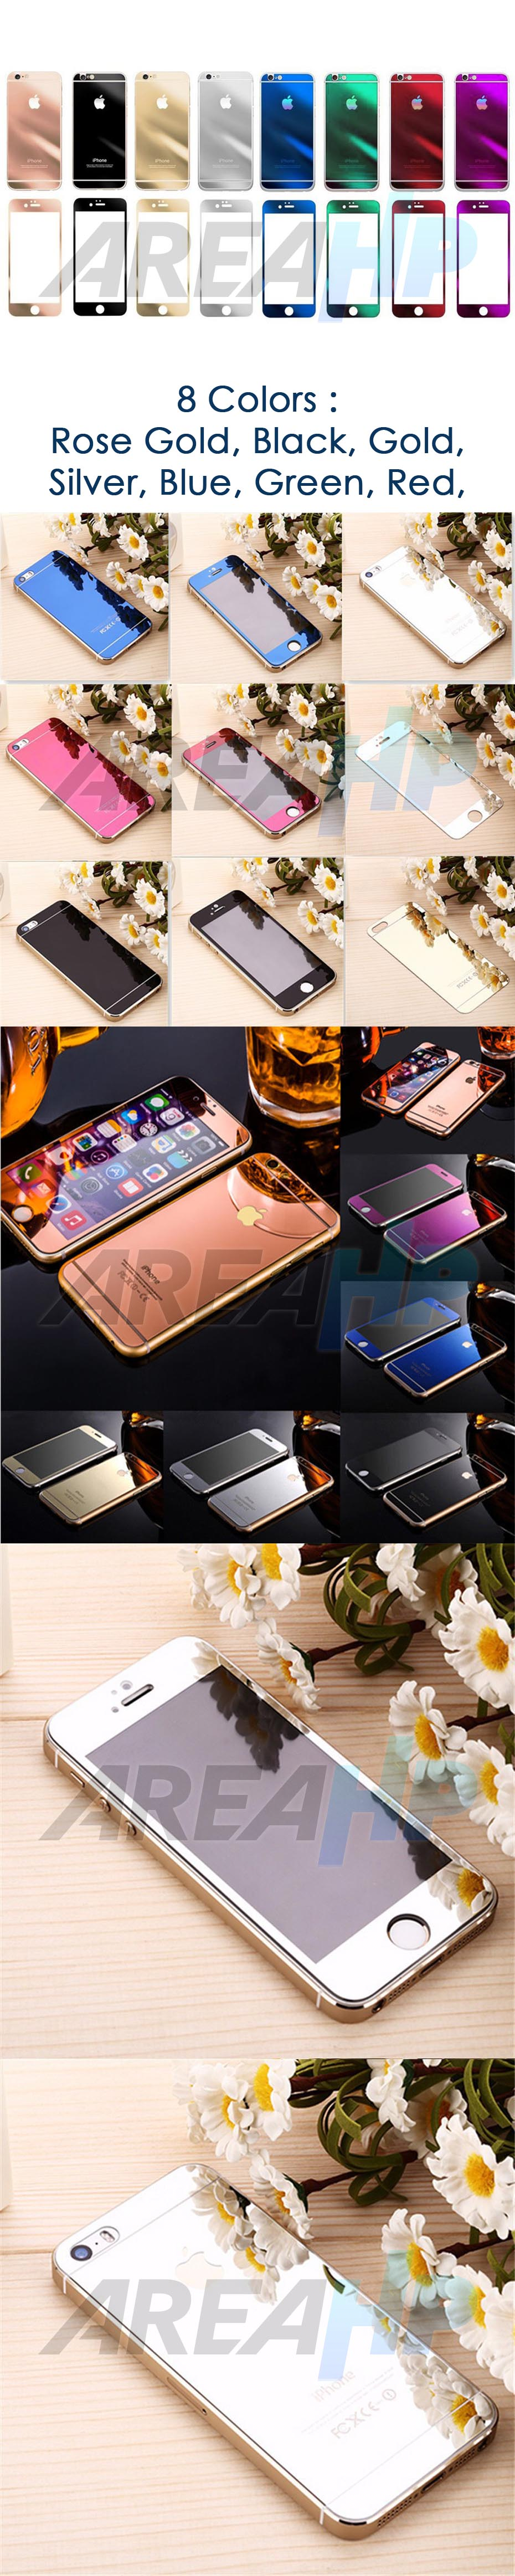 Tempered Glass iPhone Front,Back  3D Mirror Overview